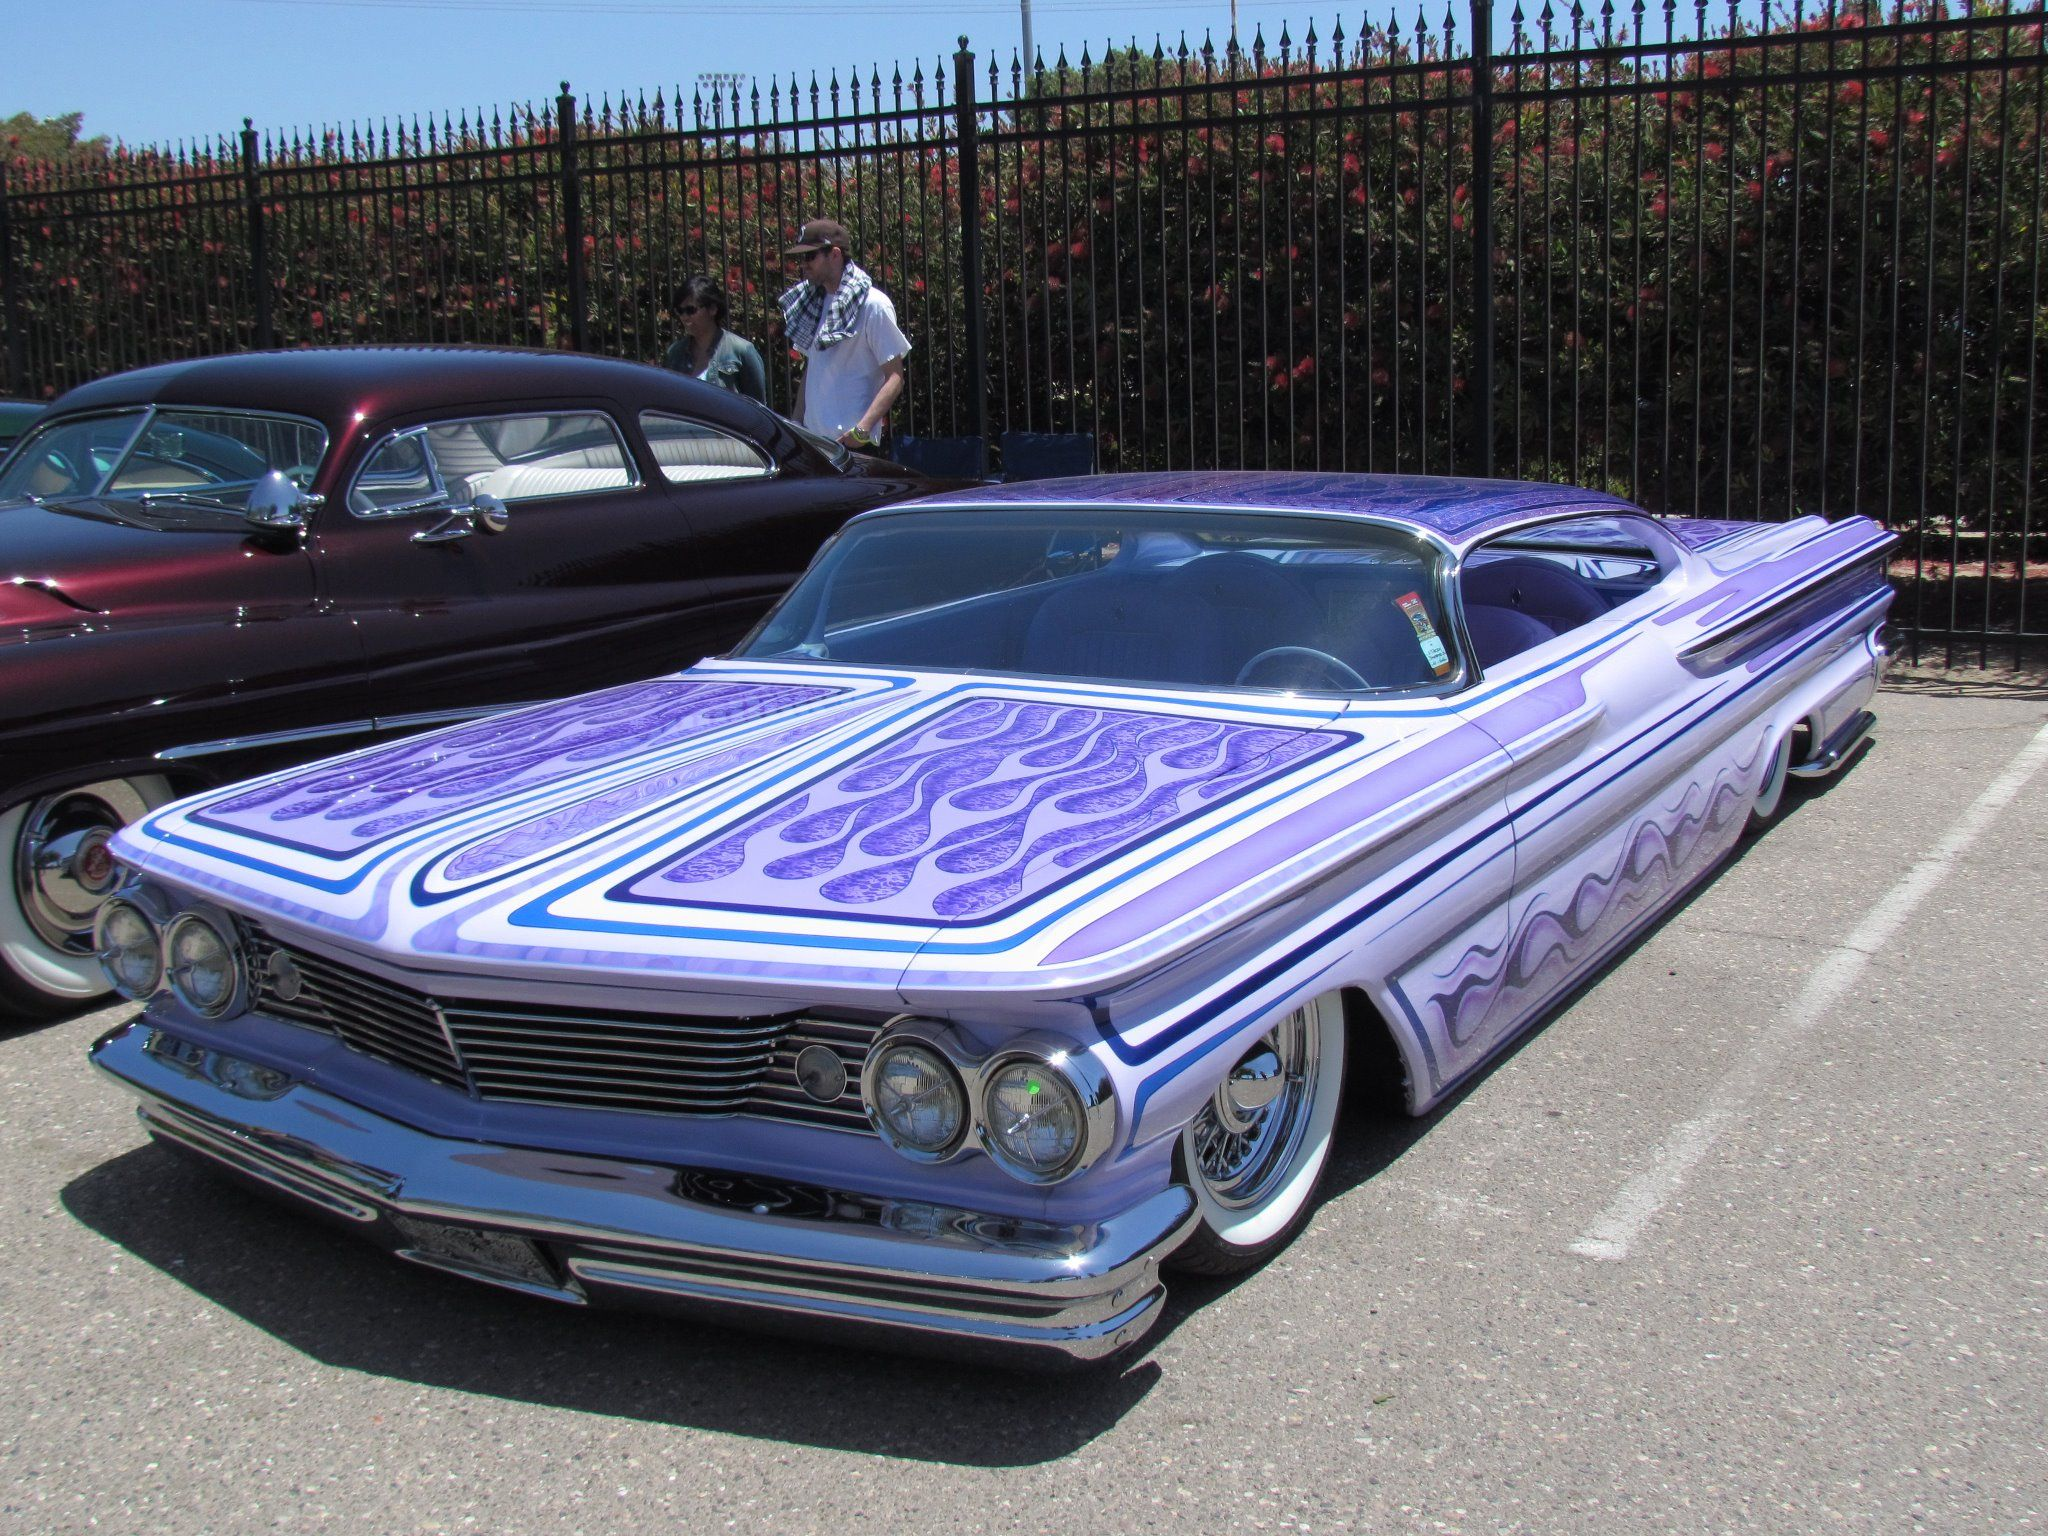 Pimped Out Lowriders Www Pixshark Com Images Galleries